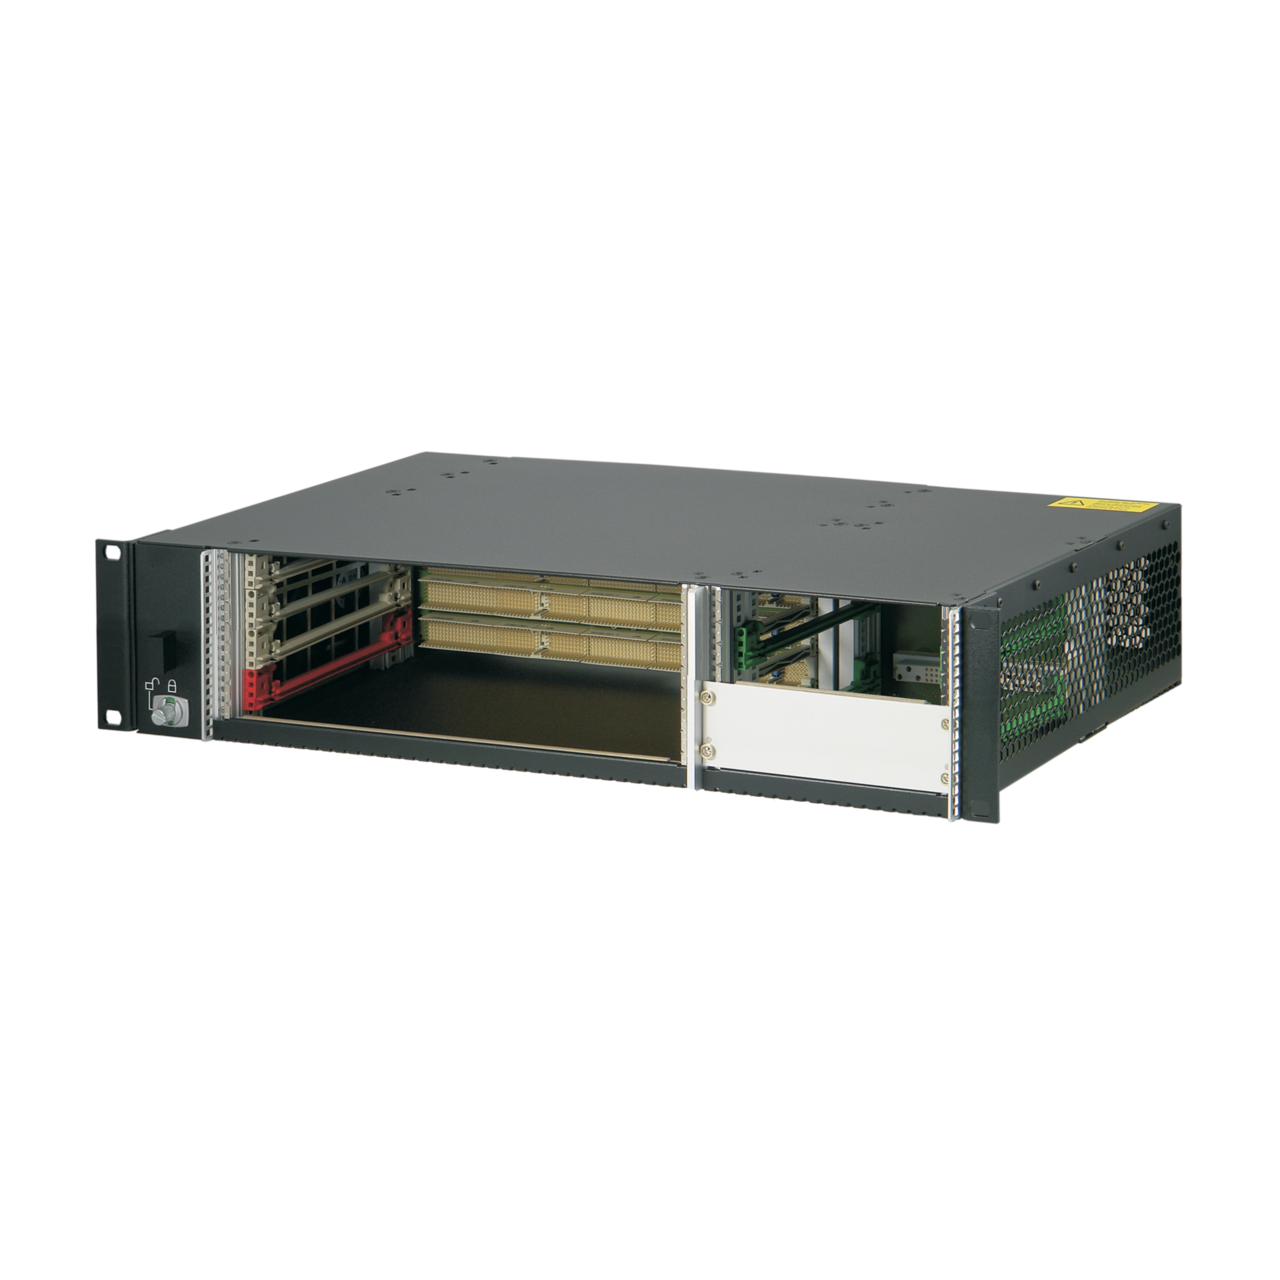 Image for CompactPCI 2 U, 4 slot, with rear I/O, for 19